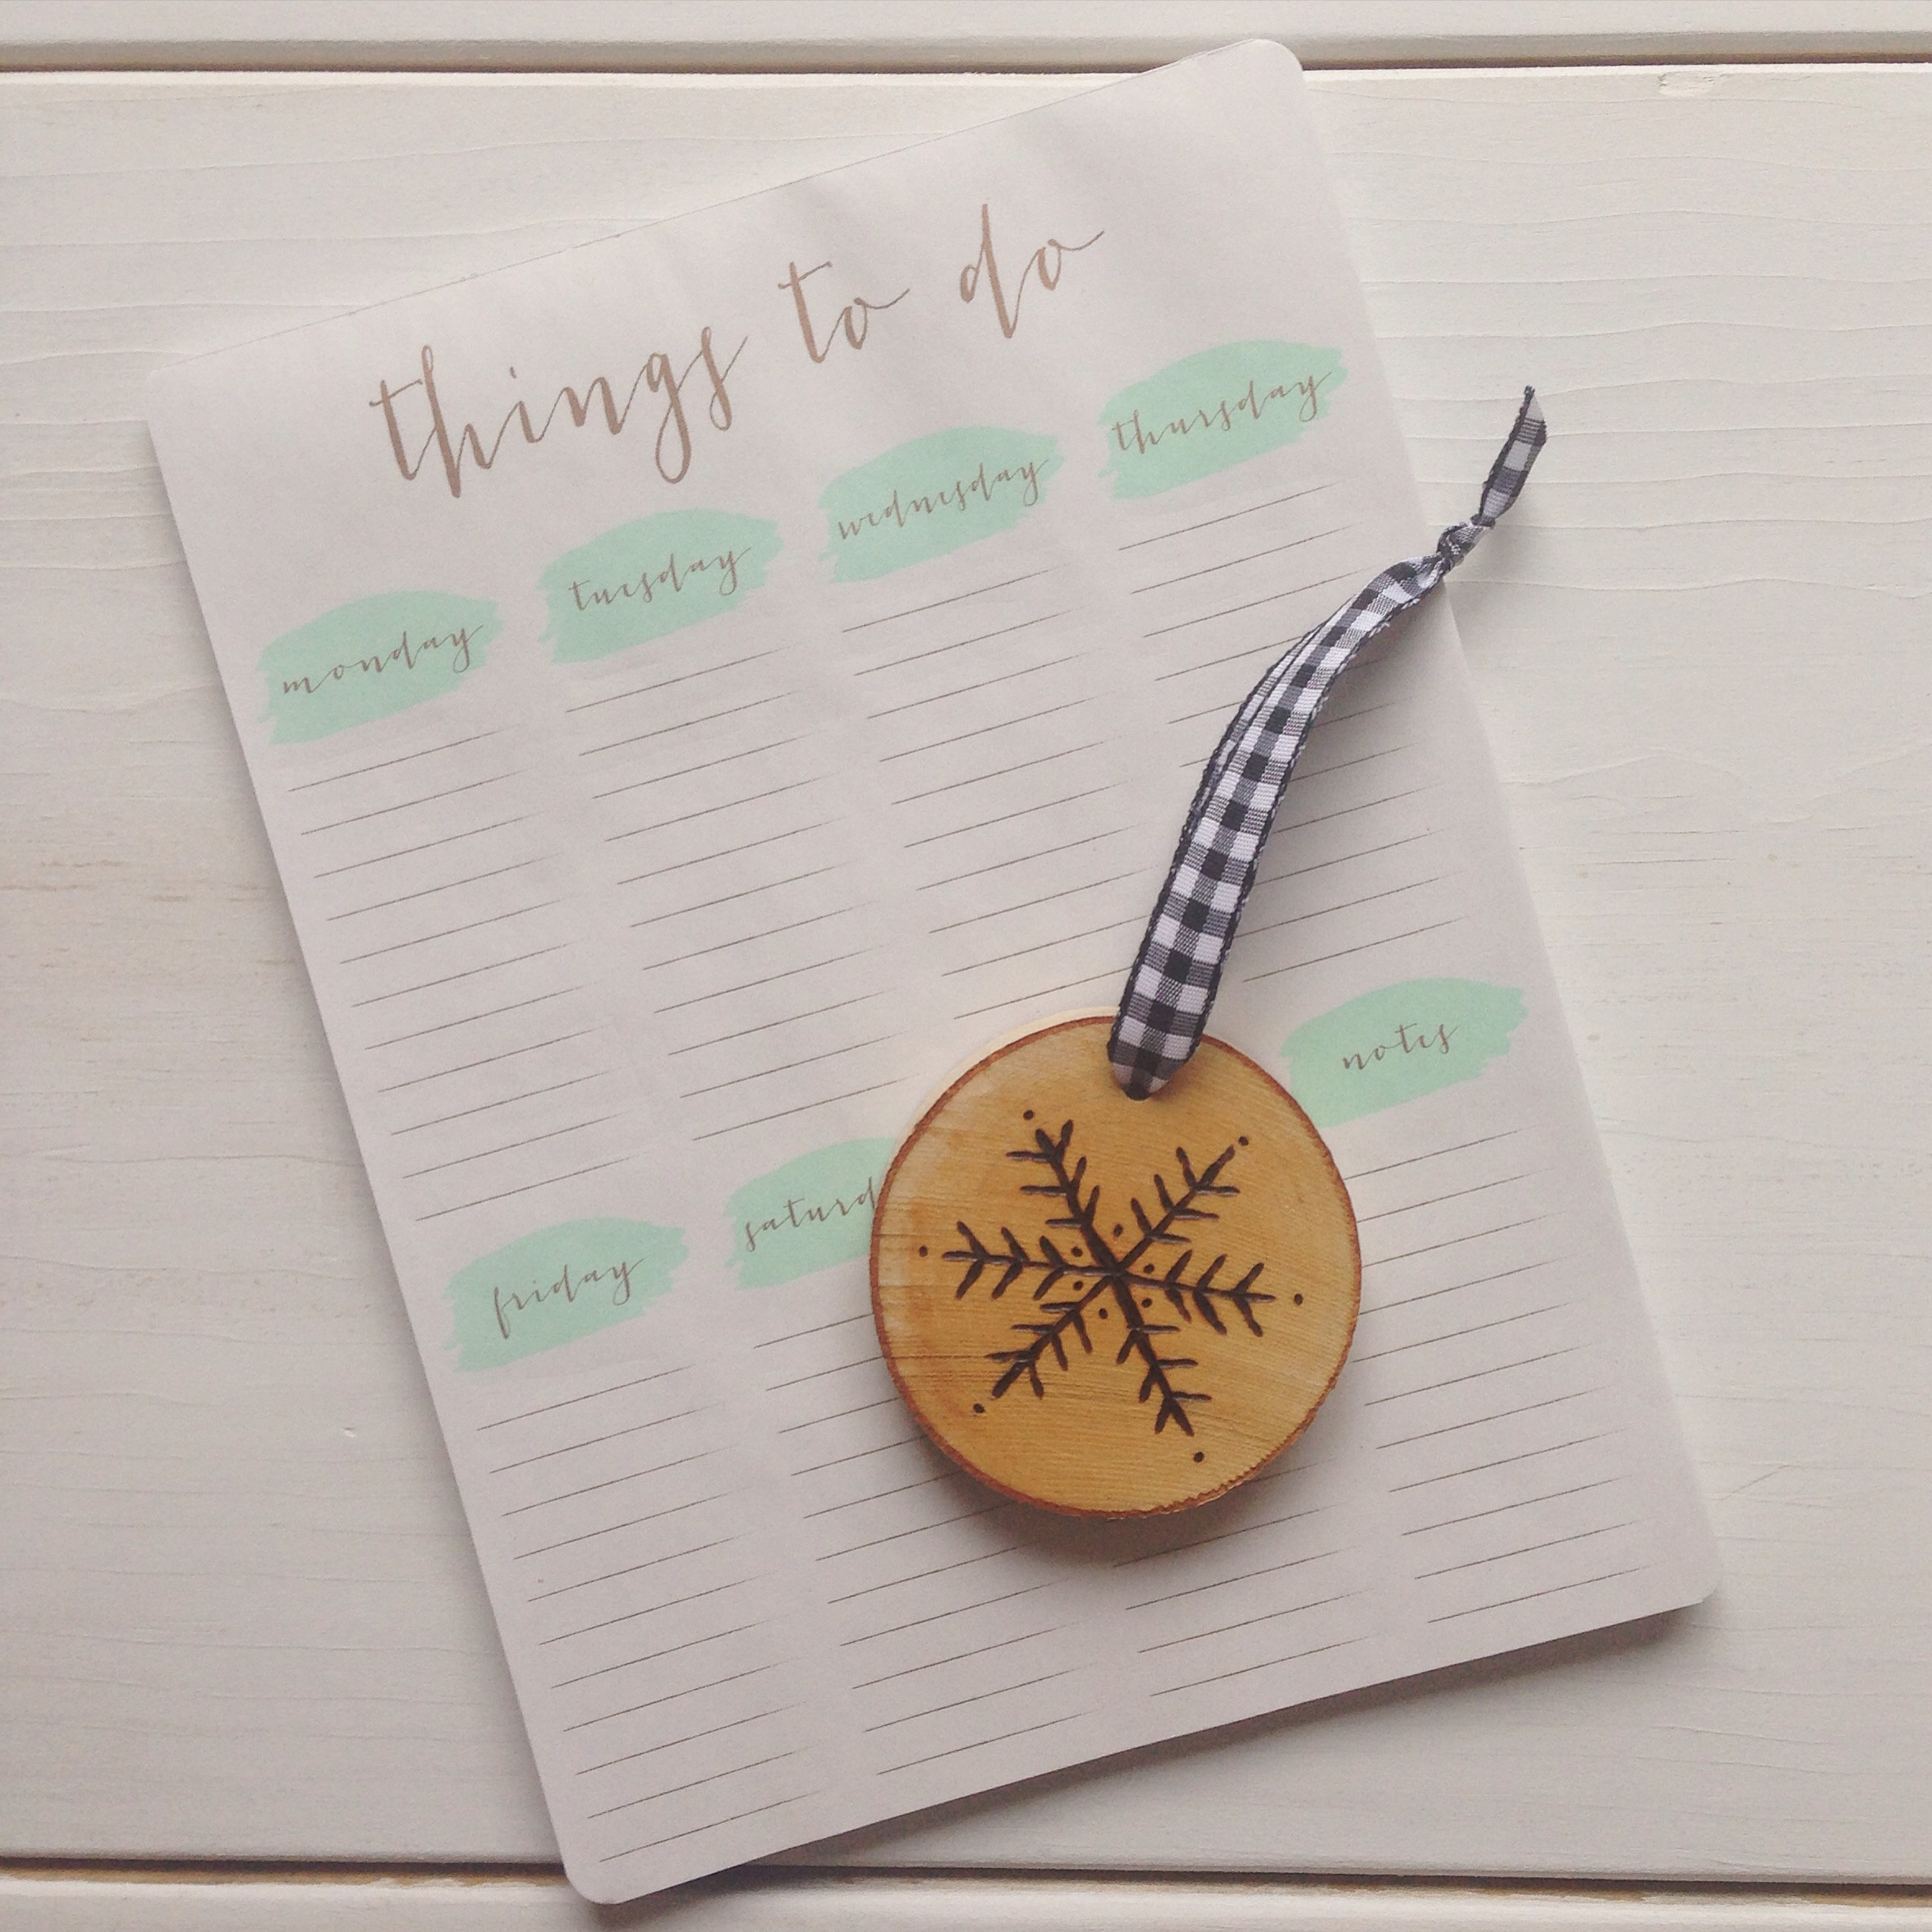 To do list - so much (great!) things to do!!